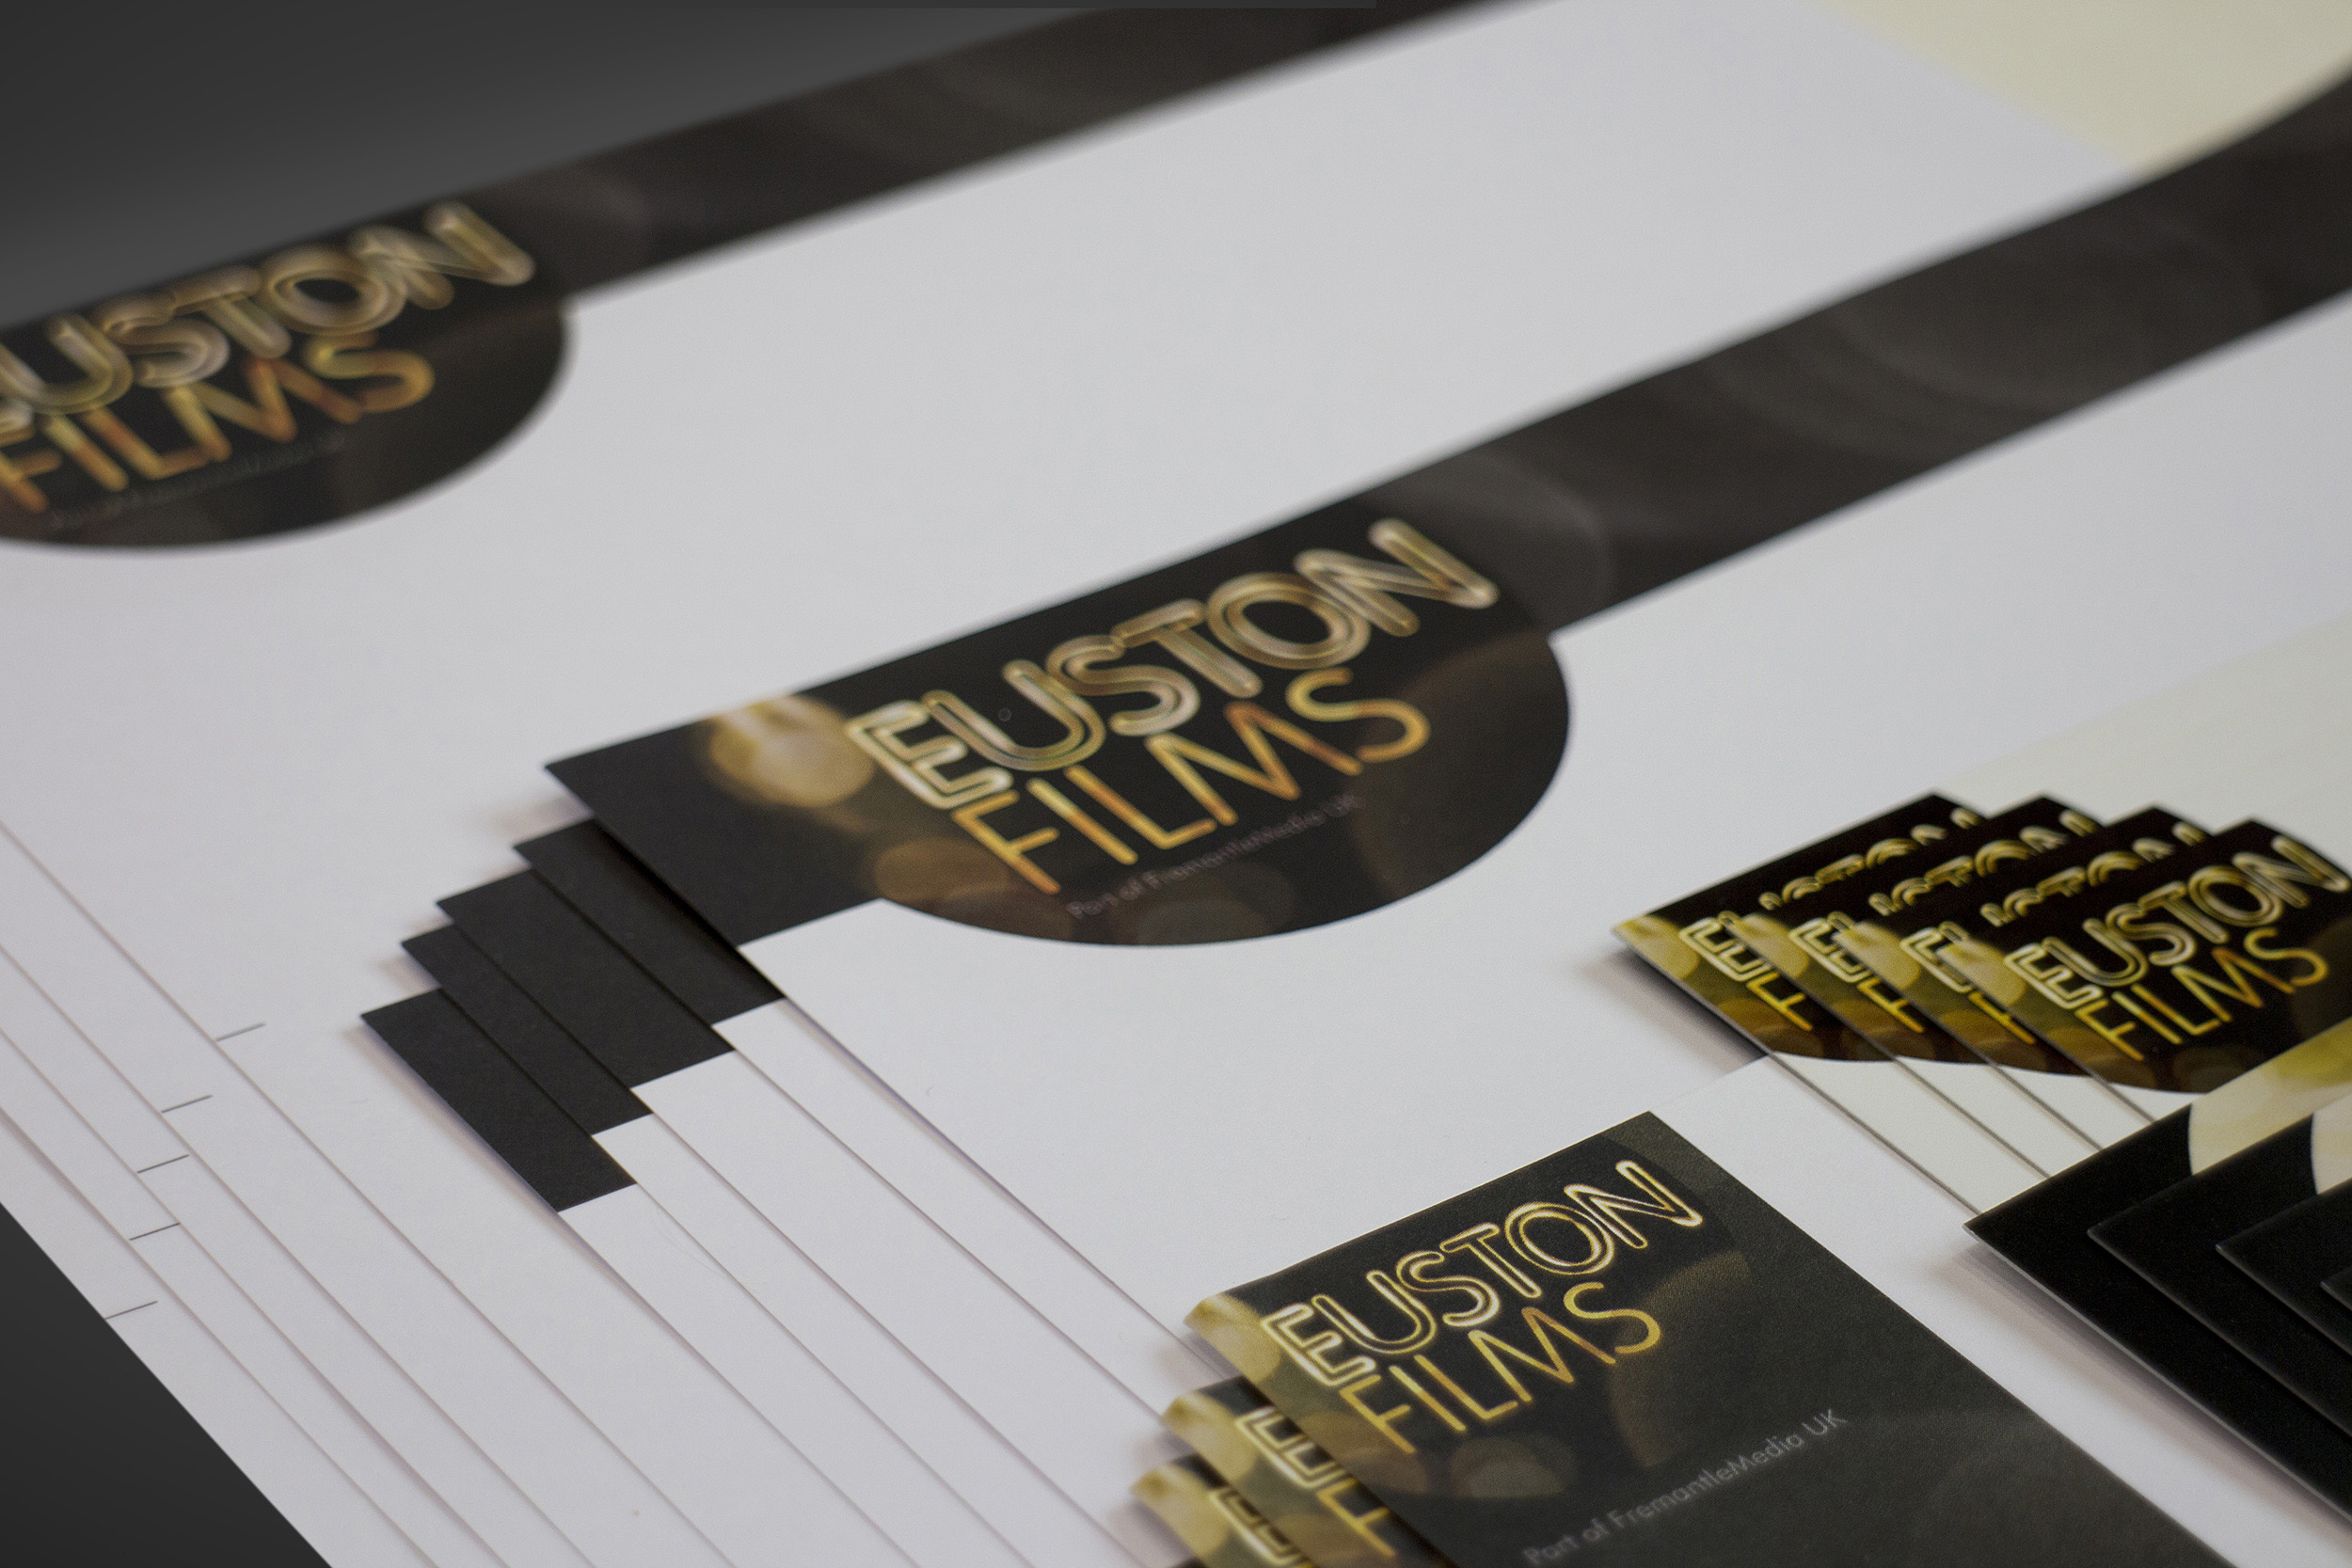 Euston Films stationery